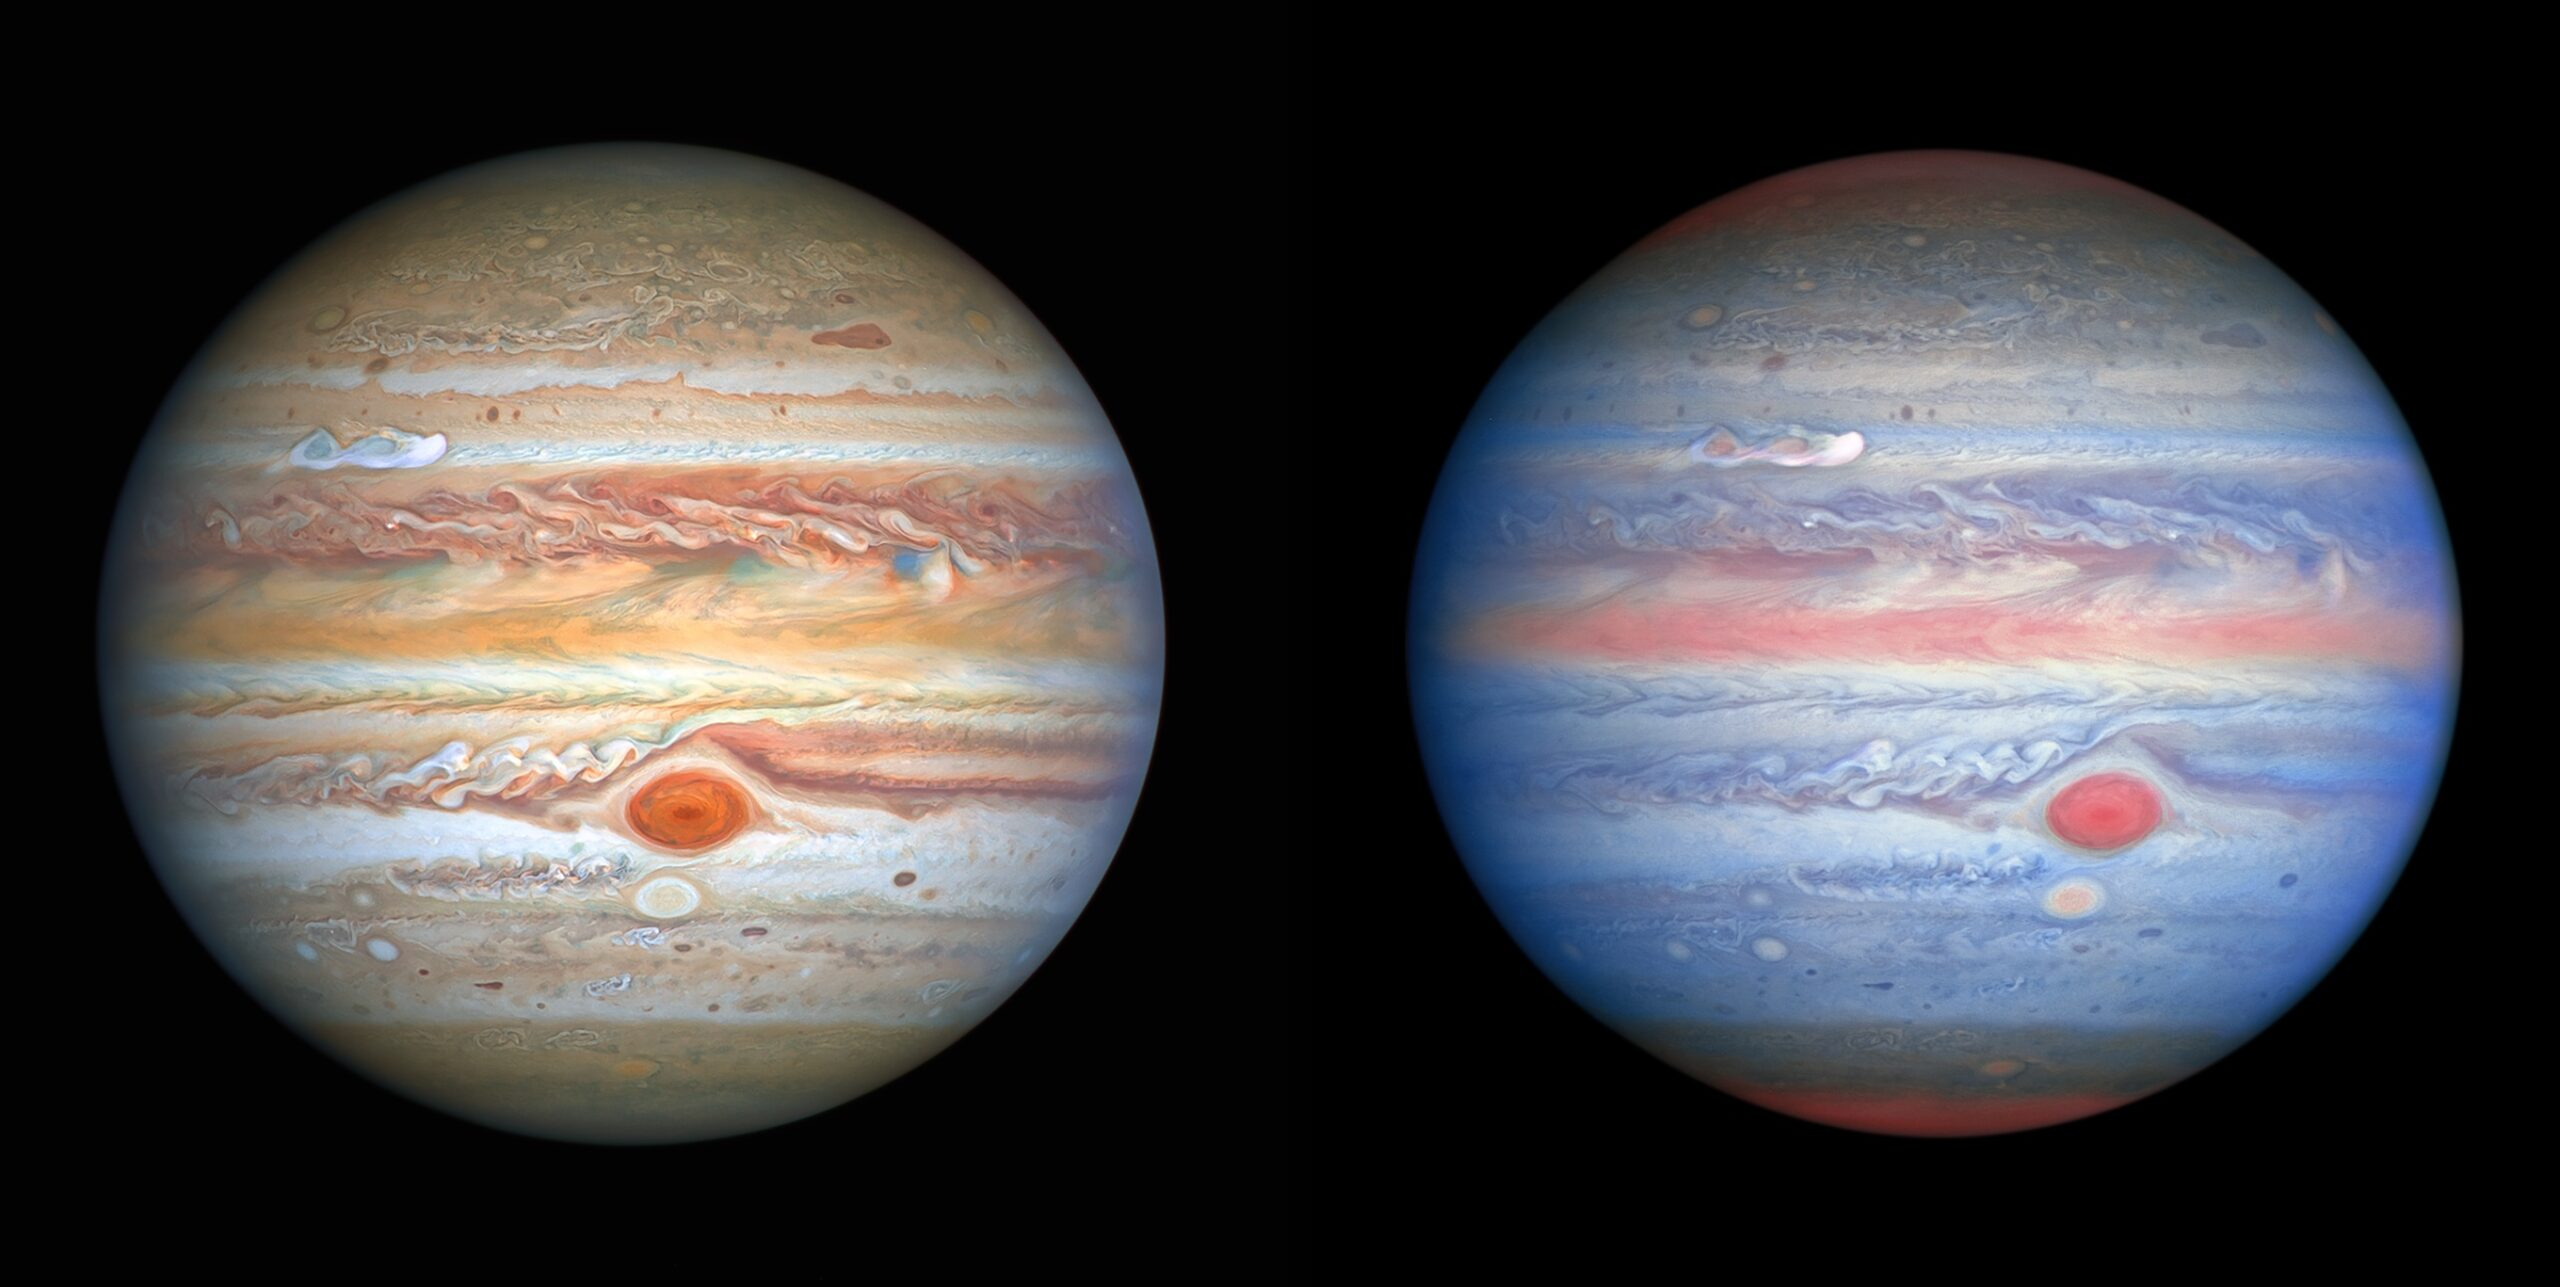 Hubble Views of Jupiter